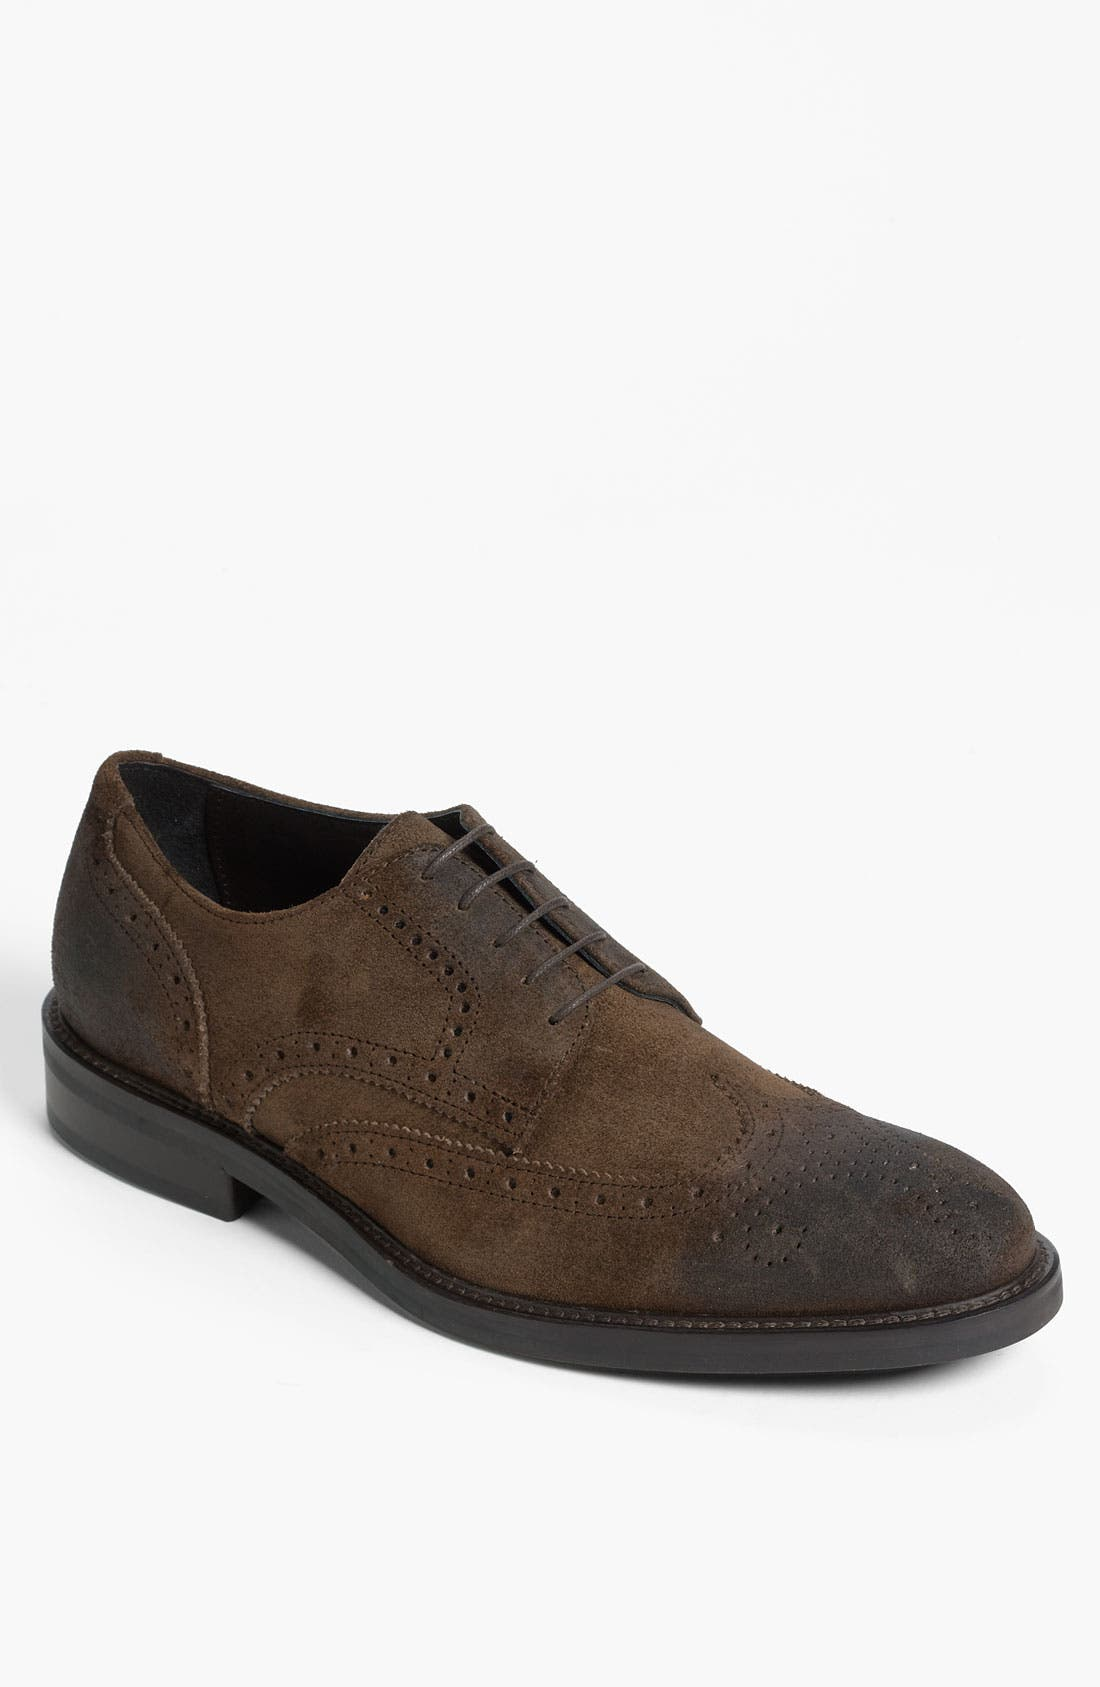 Main Image - To Boot New York 'Carr' Wingtip